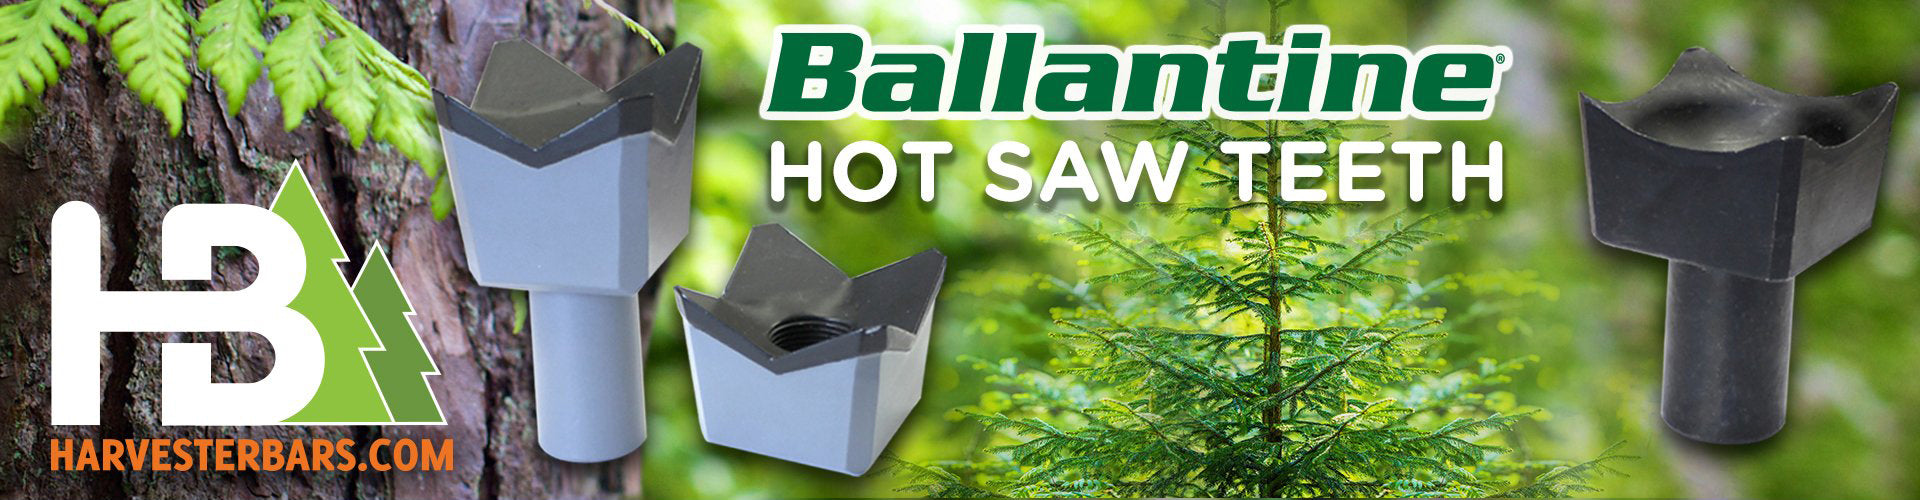 Ballantine Hot Saw Teeth